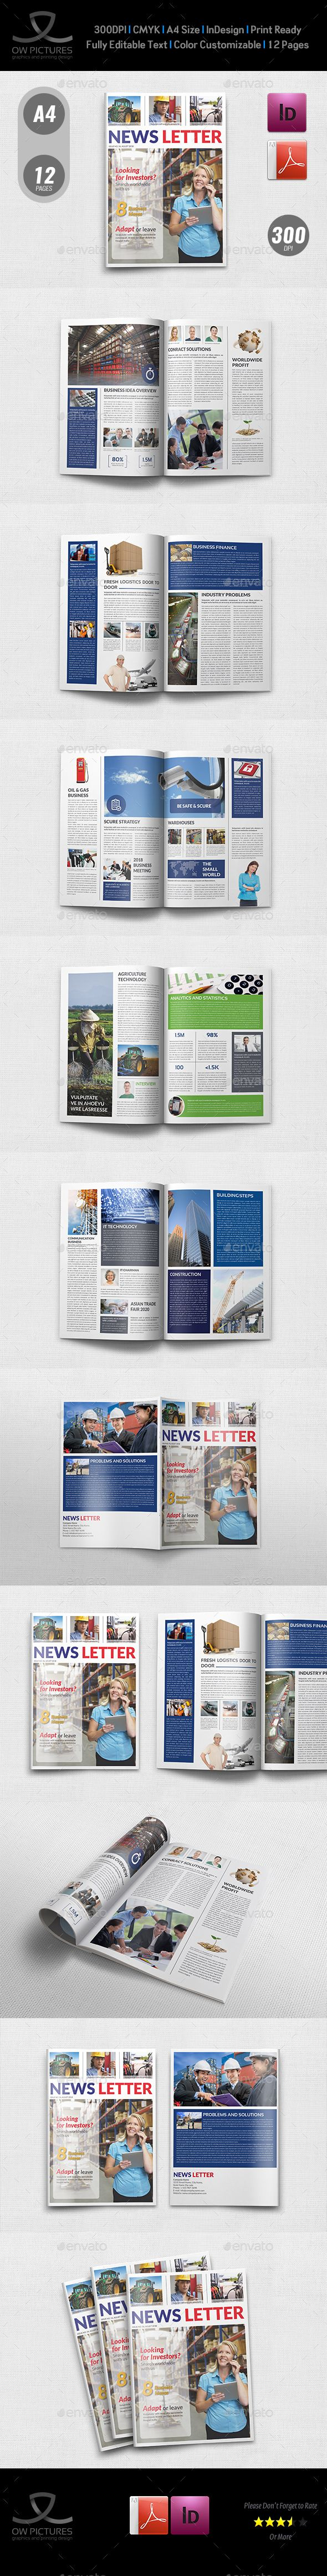 #Multipurpose Newsletter - 12 Pages - #Newsletters Print #Templates Download here:  https://graphicriver.net/item/multipurpose-newsletter-12-pages/19166458?ref=alena994